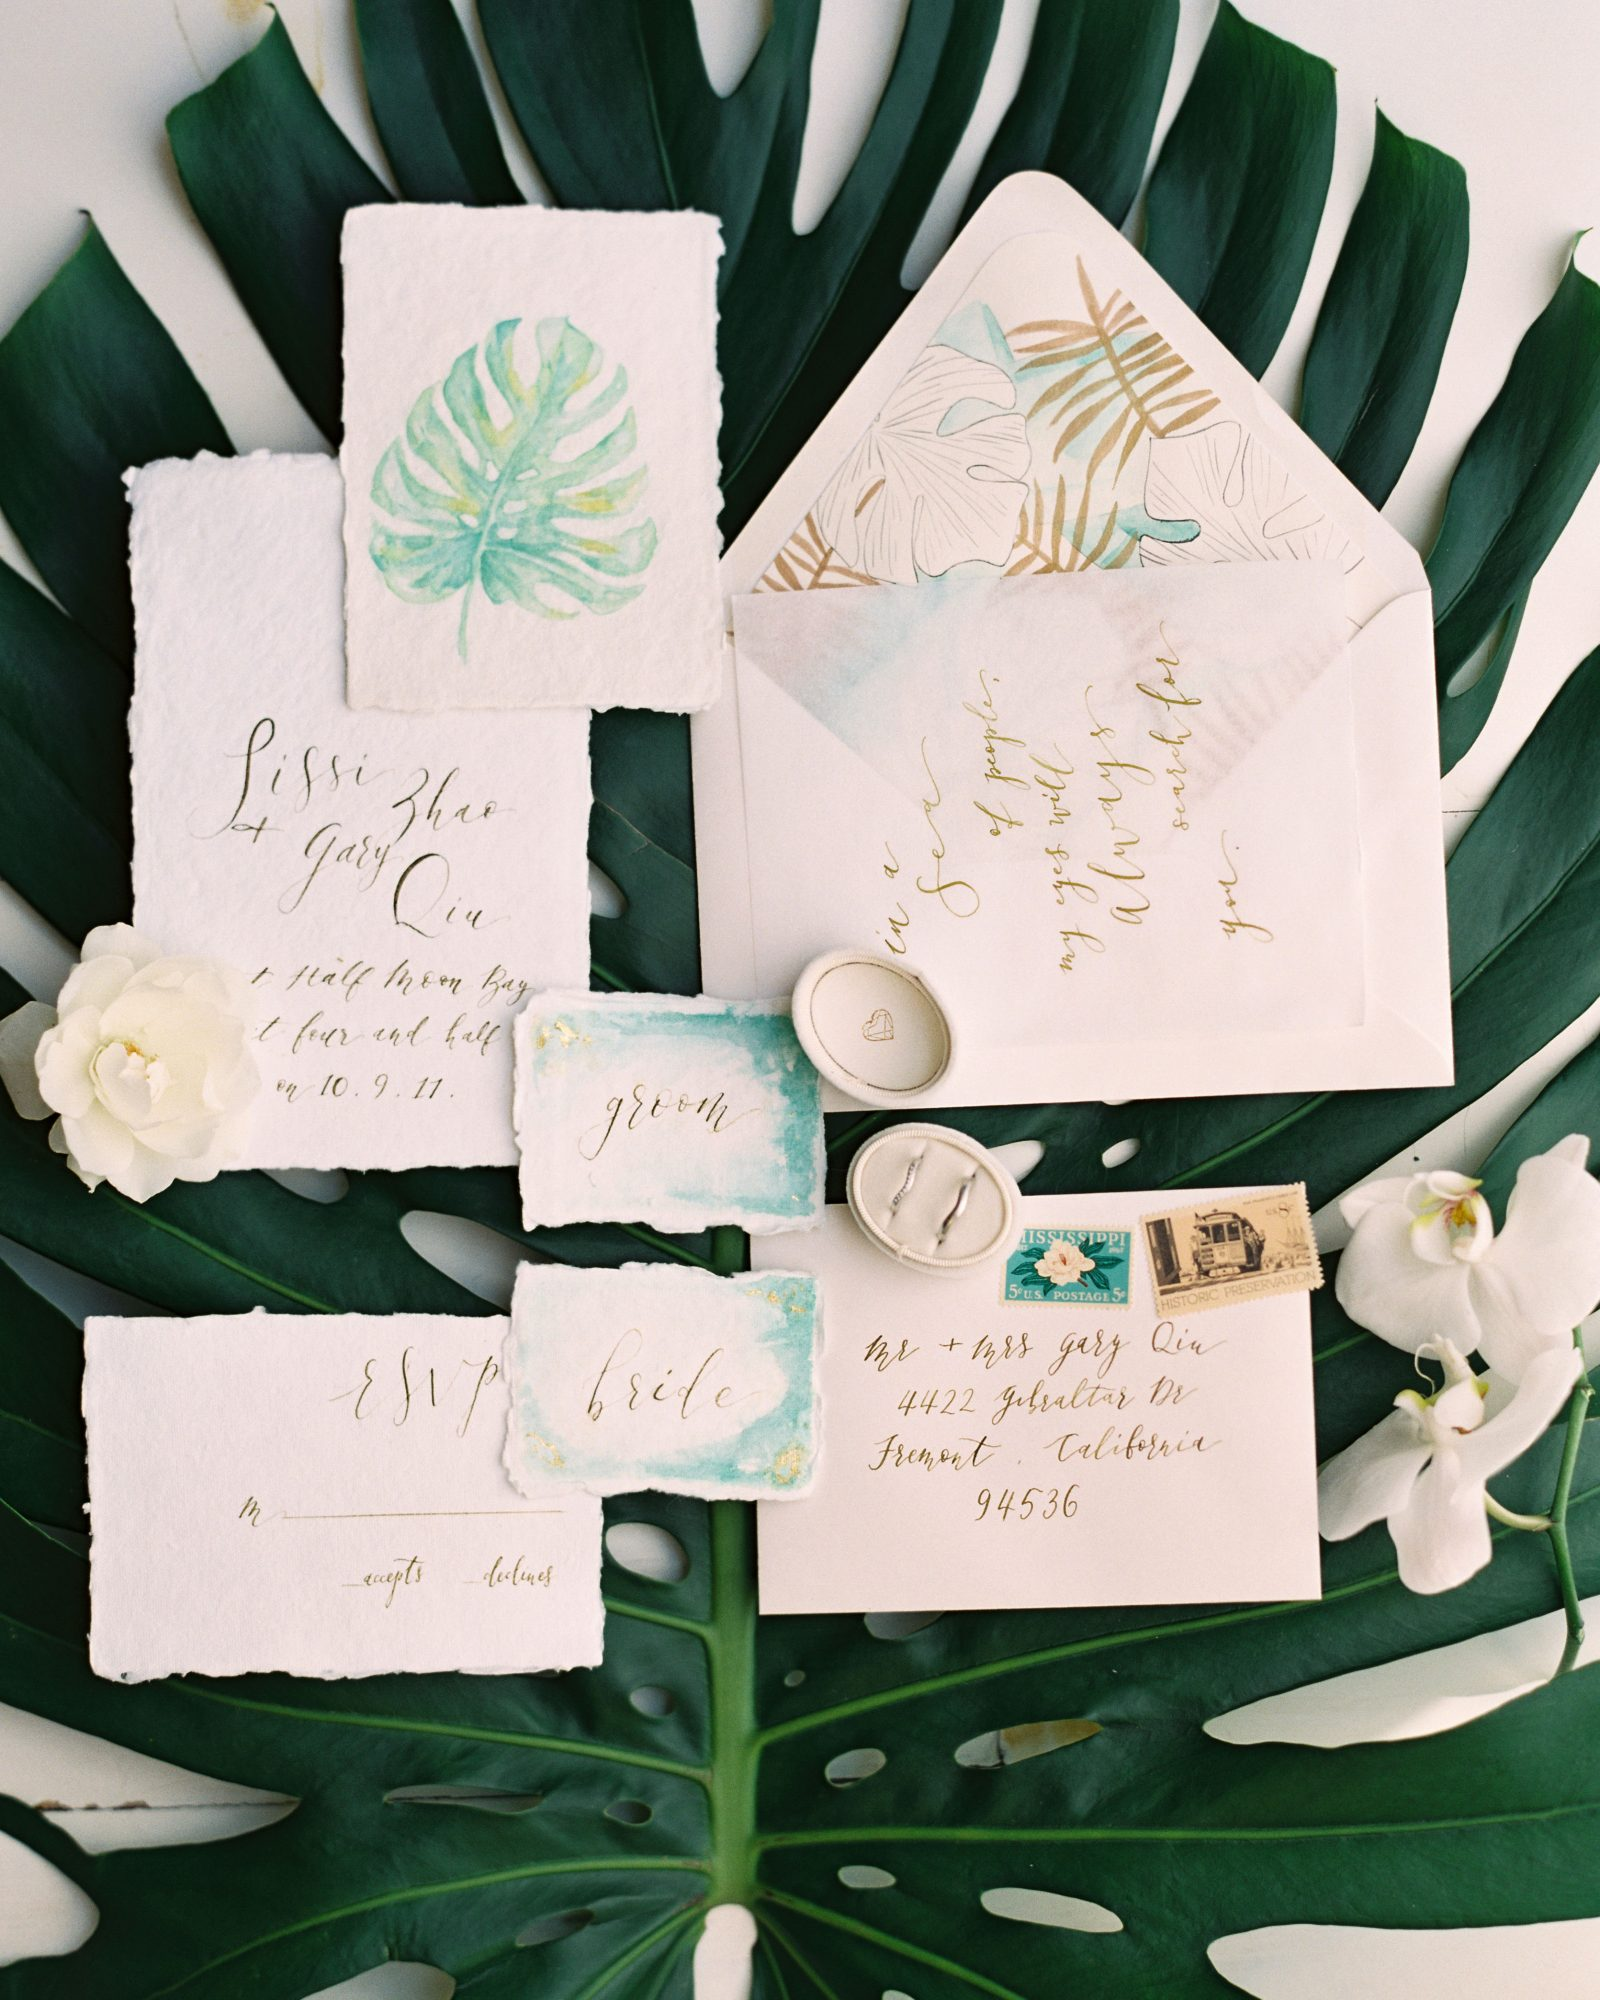 The bride calligraphed these gorgeous beach invitations (dreamt up by Lovely Time), which boasted tropical illustrated envelope liners.